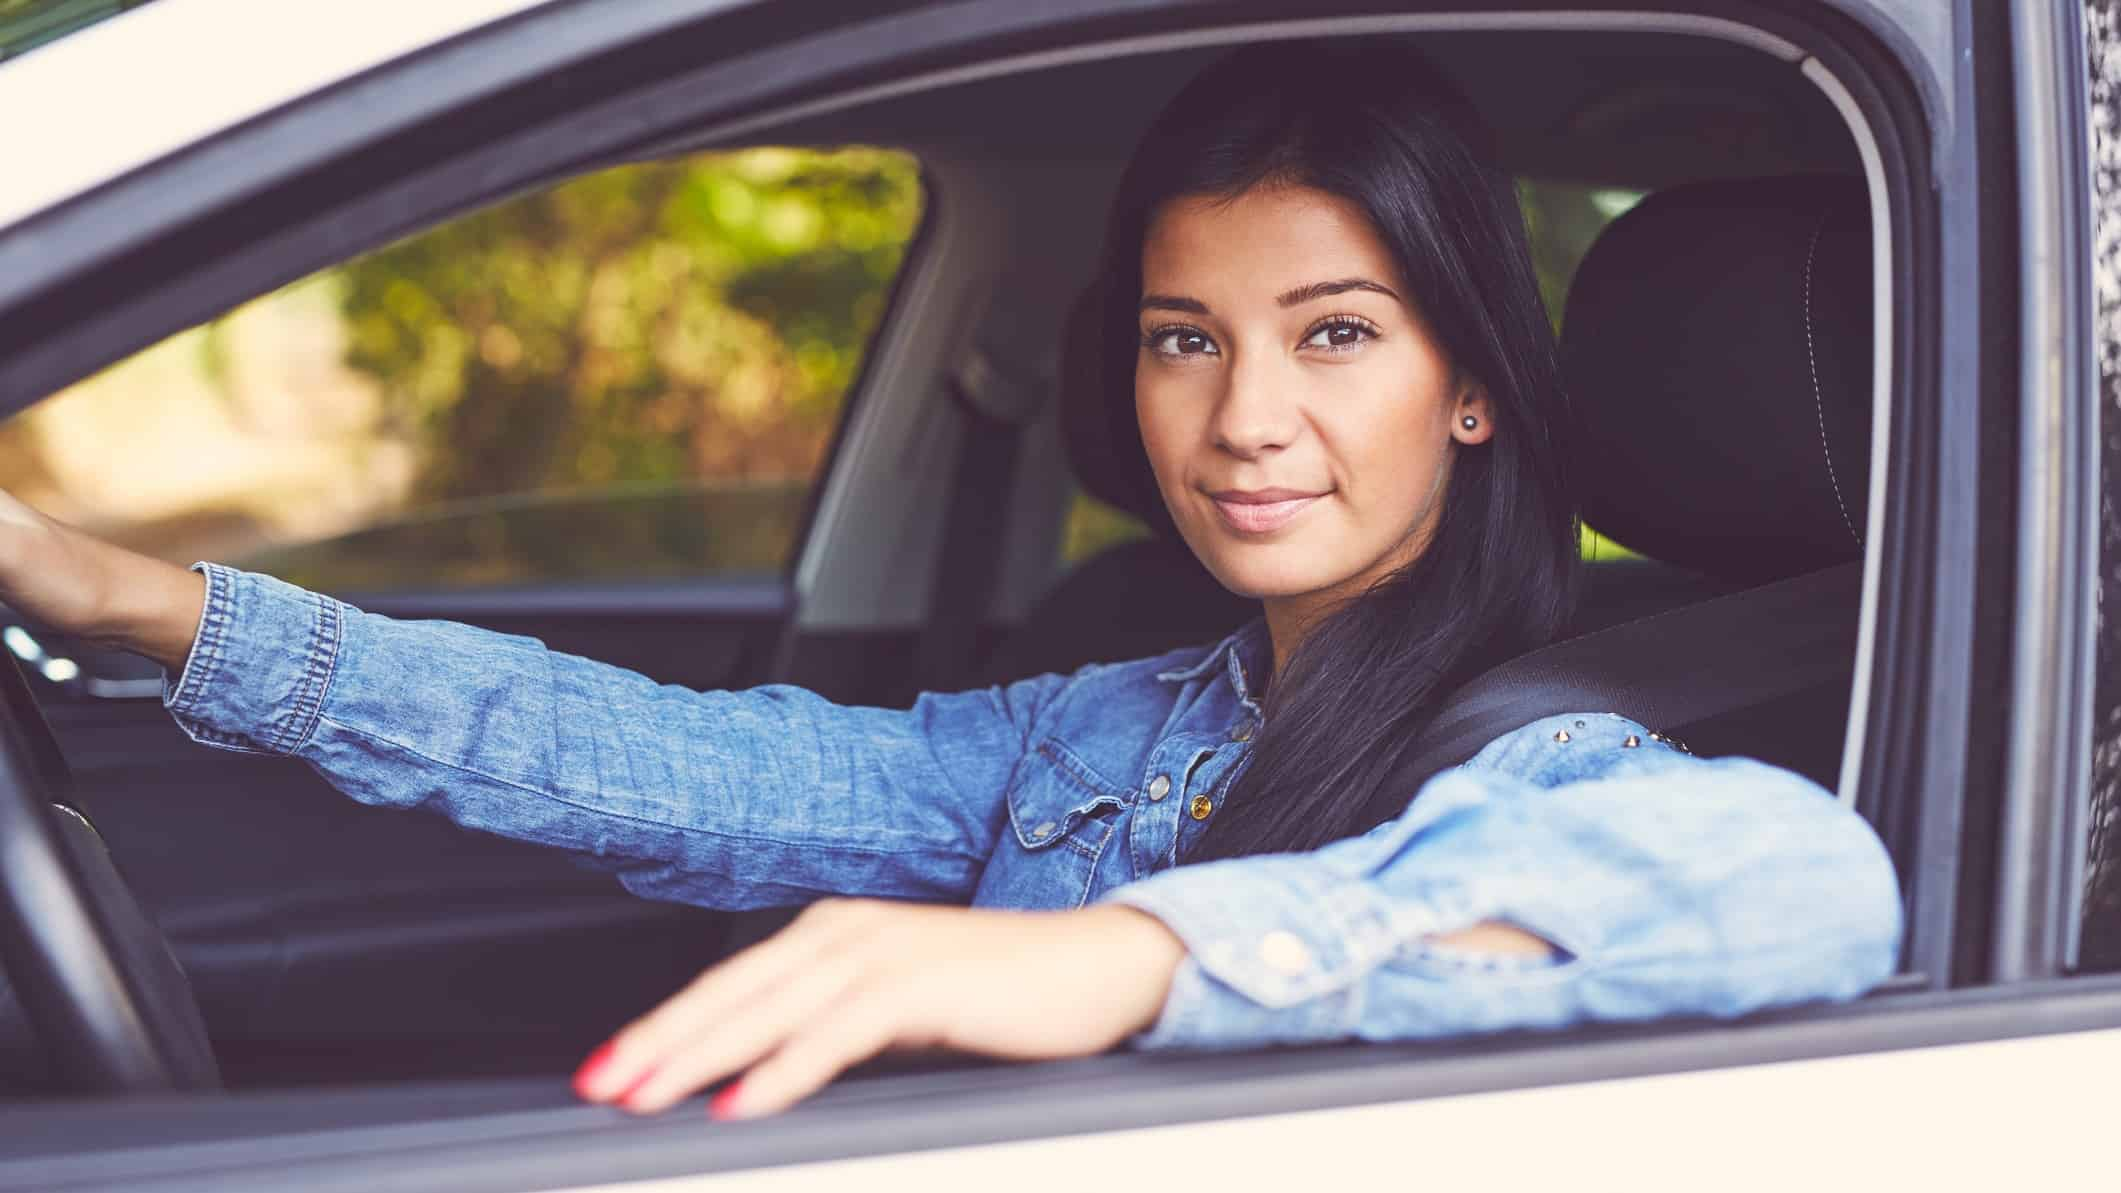 a woman sits in the driver's seat of a car with her arm resting on the door with a small smile on her face, looking out of the car.